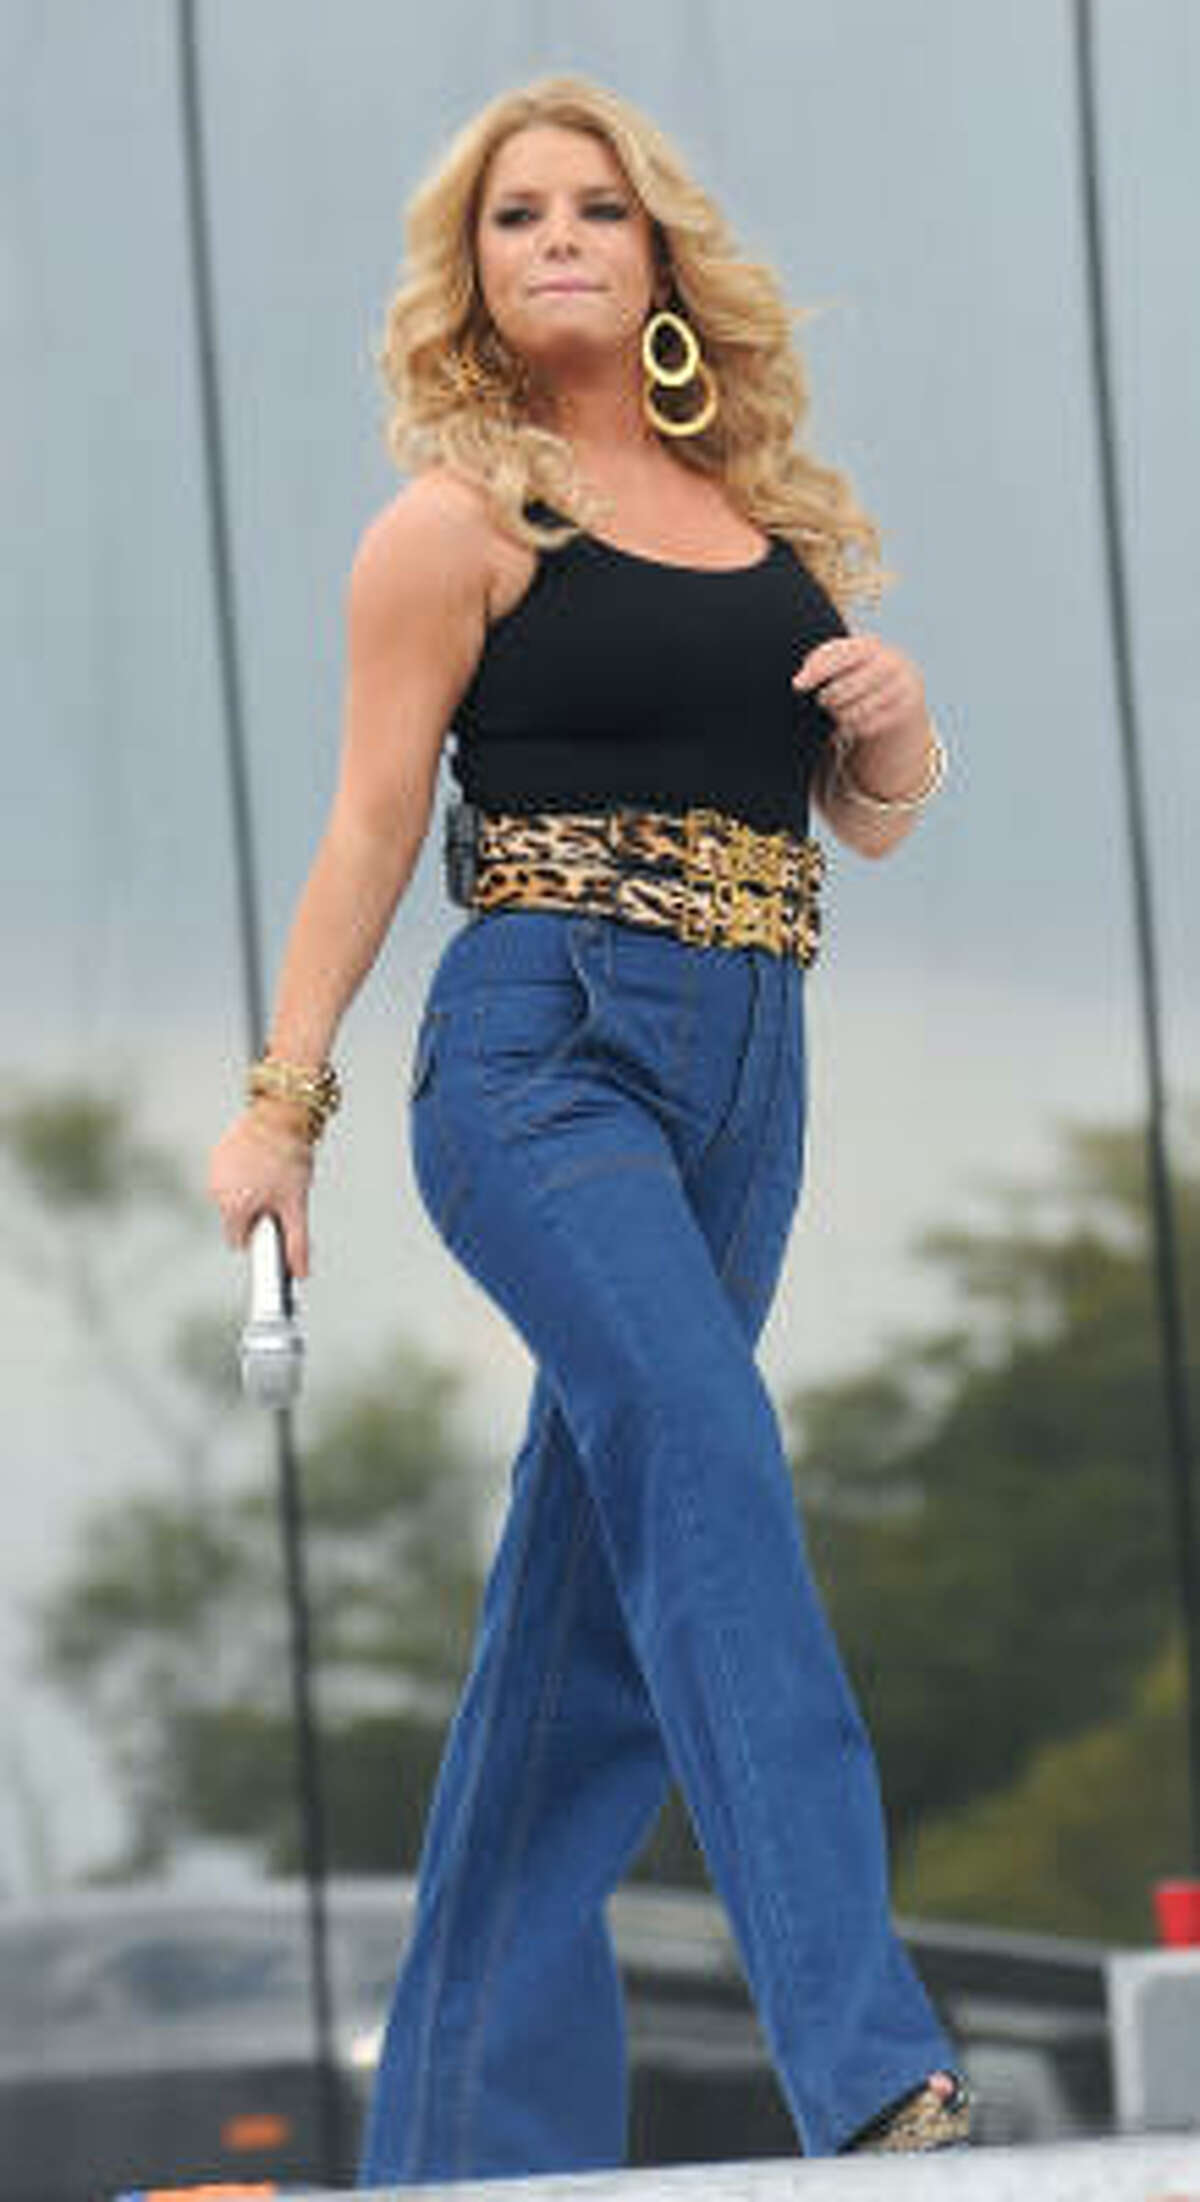 When Jessica Simpson performed at a chili cook off last month, the tongues started wagging.